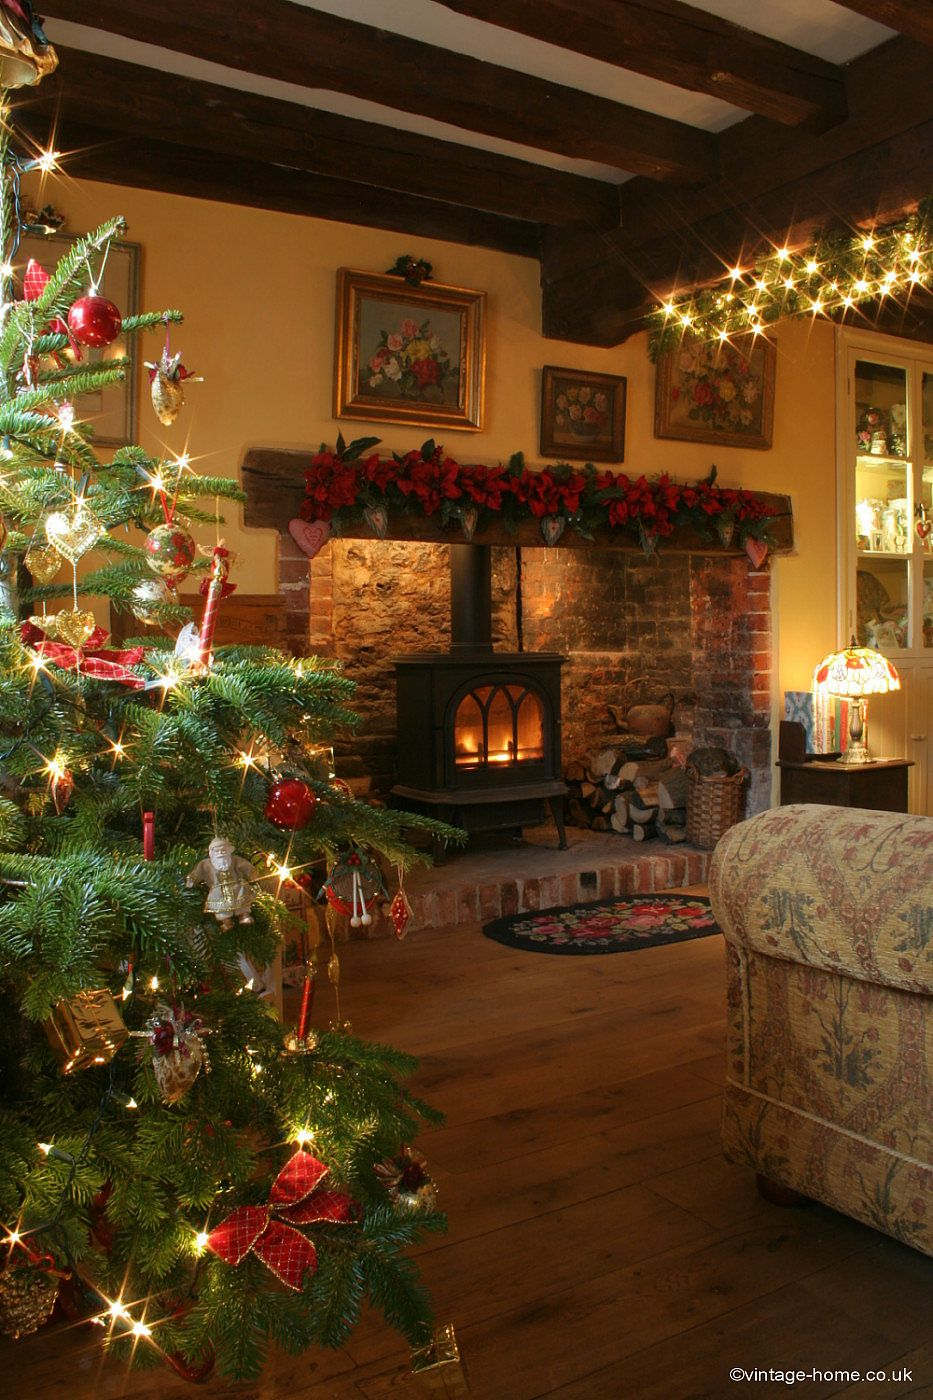 The Christmas Cottage 2019.Gorgeous Christmas Cottage With Inglenook Fireplace